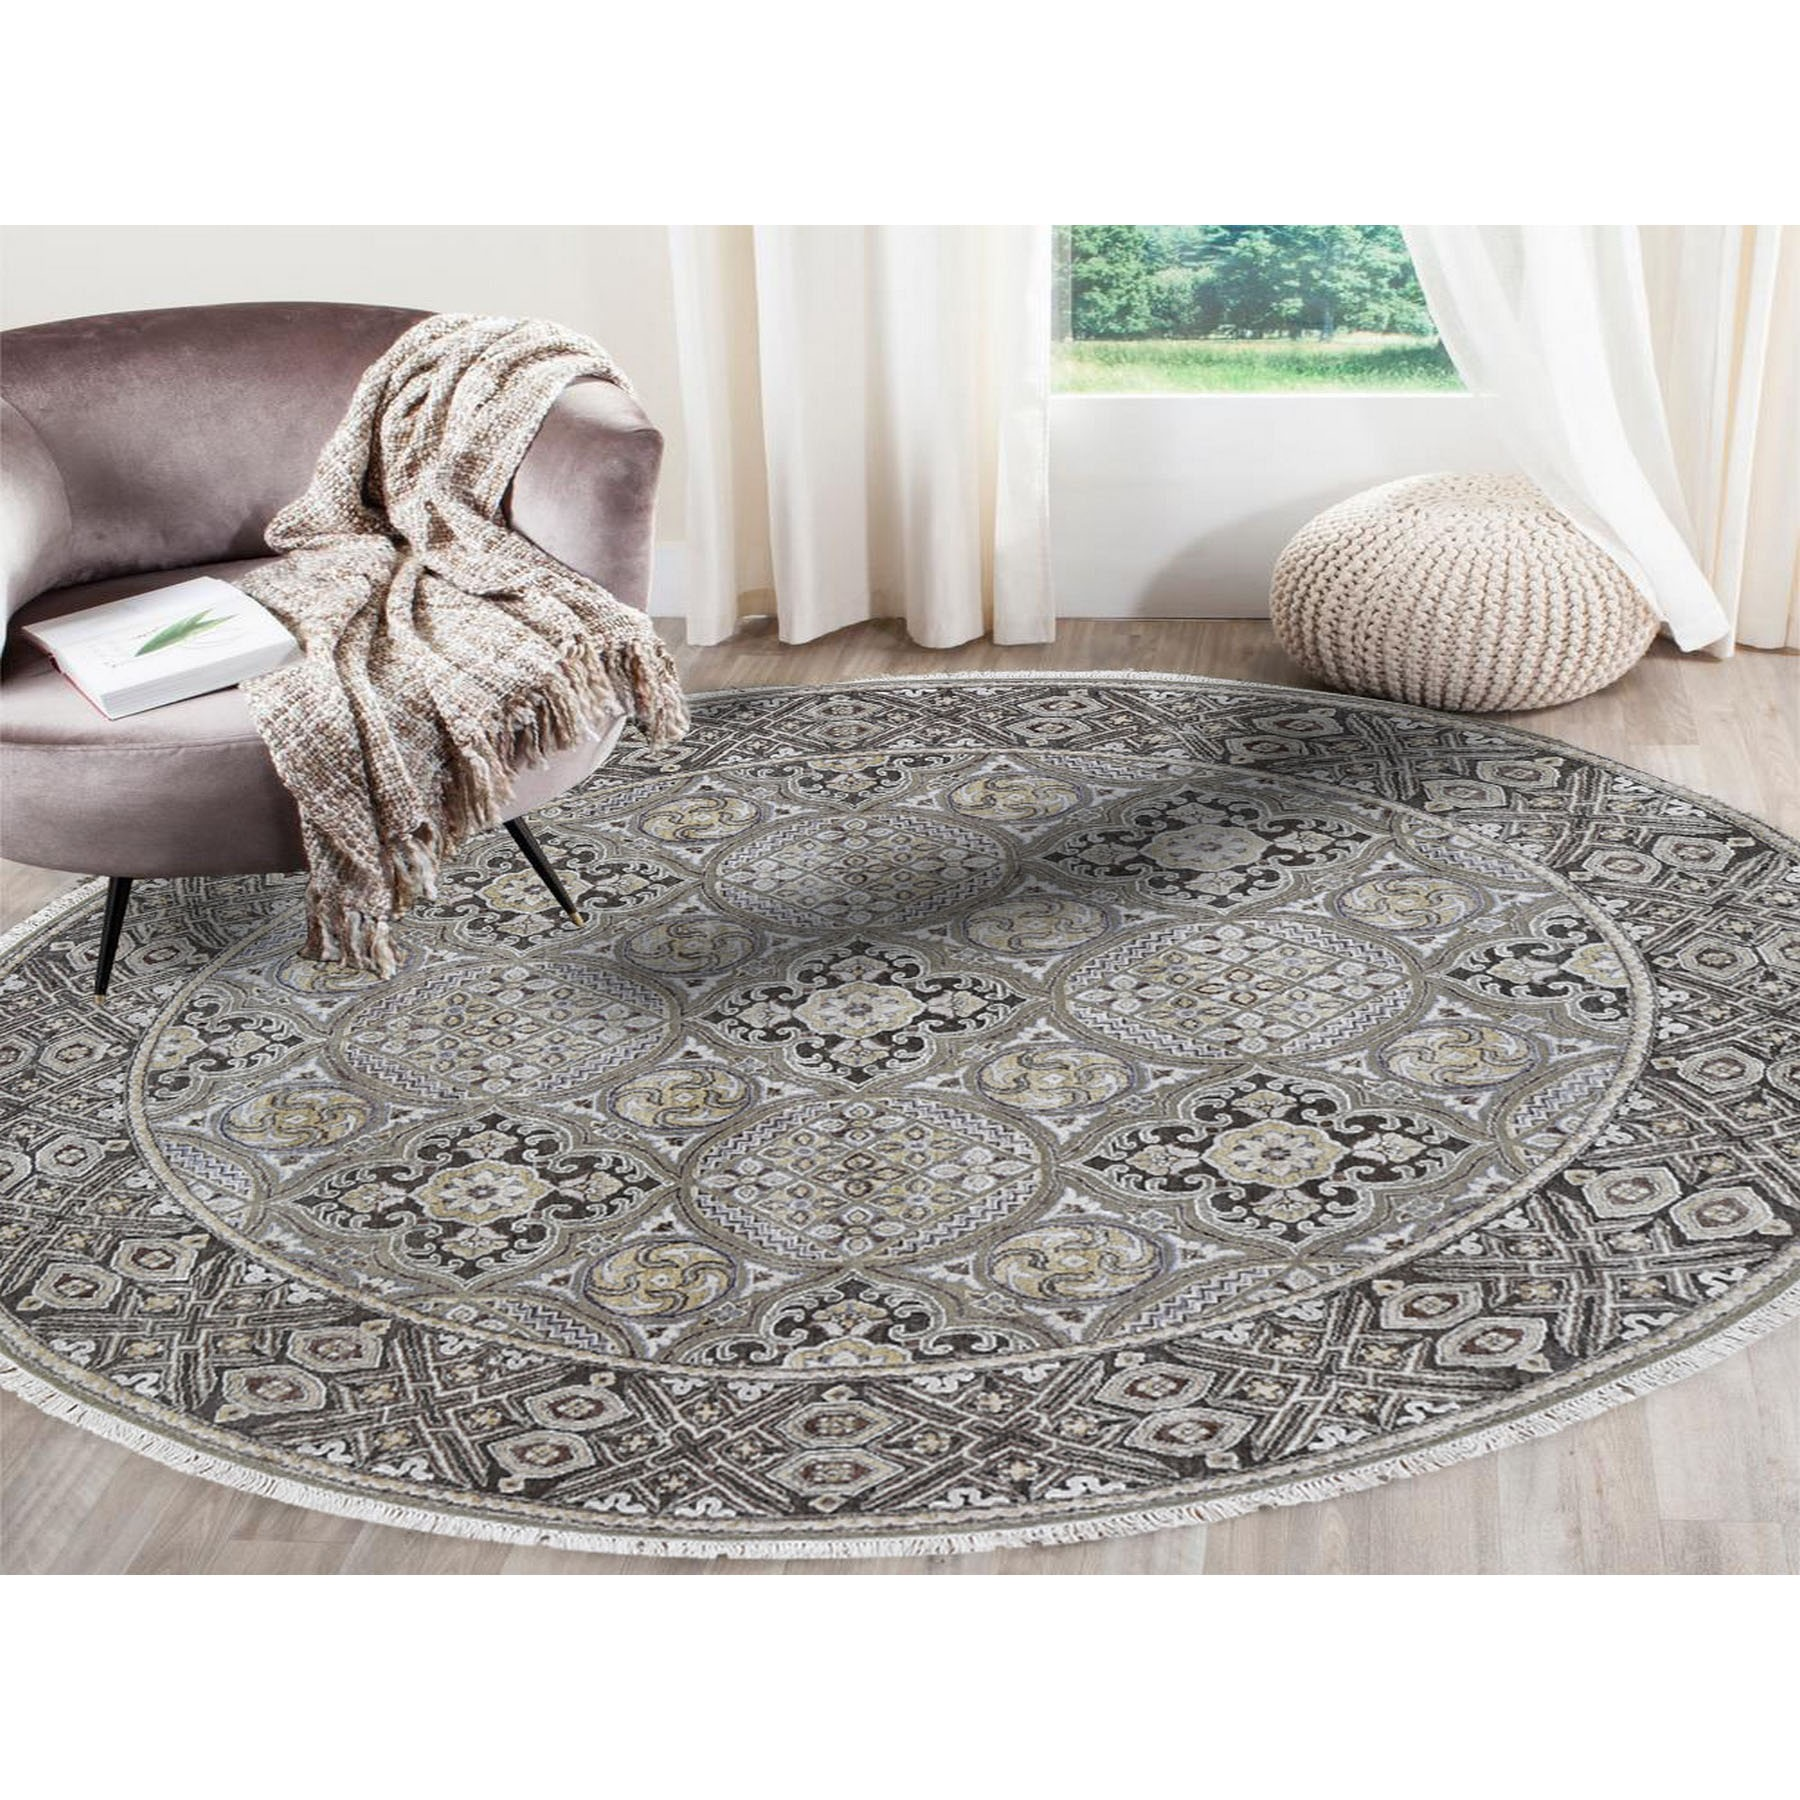 10'x10' Textured Wool and Silk Mughal Inspired Medallions Round Hand-Knotted Oriental Rug